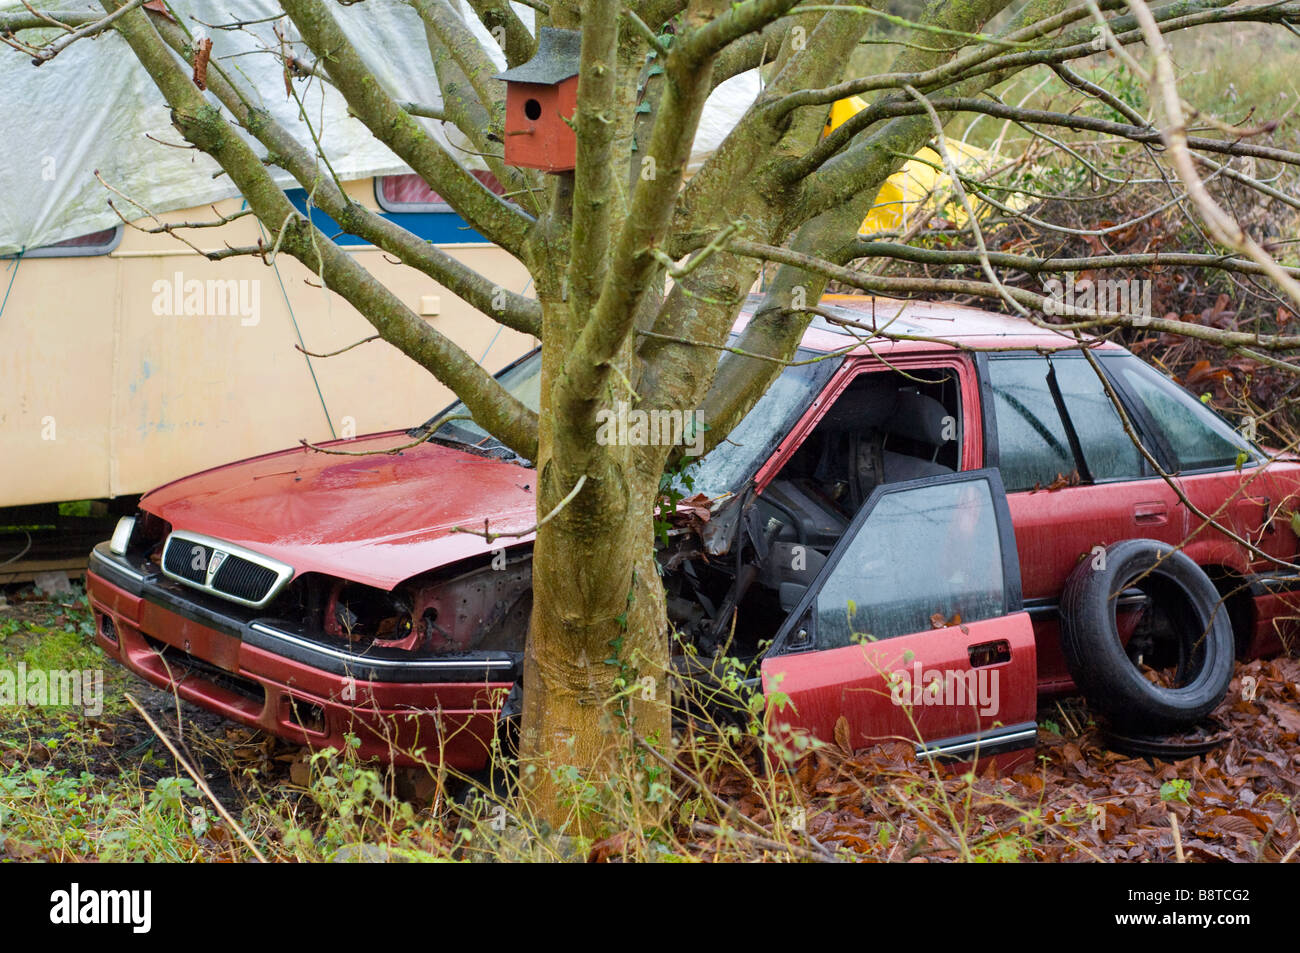 An abandoned car and caravan, and a bird nesting box, on waste ground in Somerset, England. - Stock Image